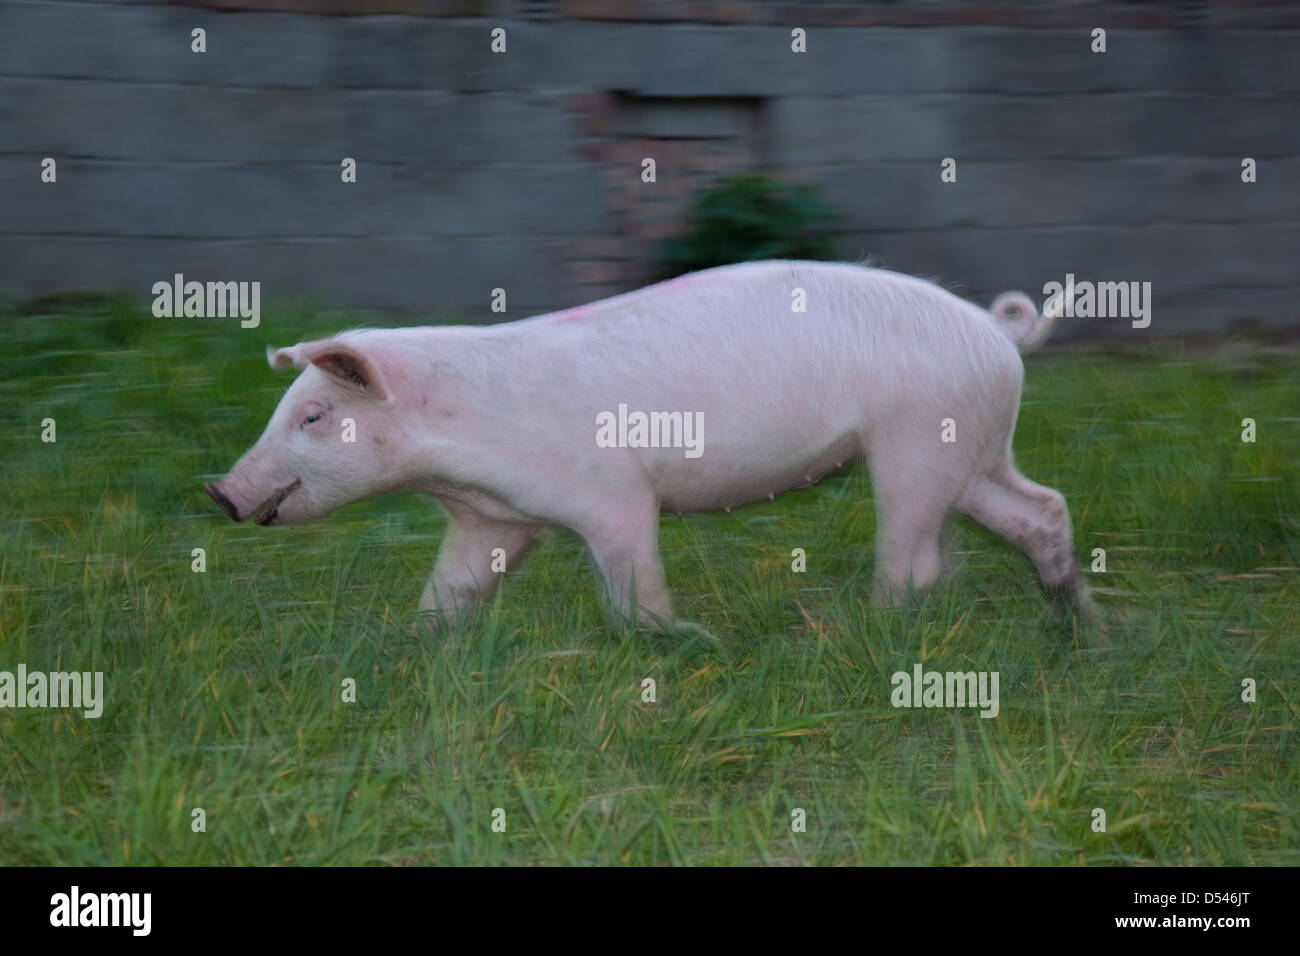 Brandenburg / Havel, Germany, a pig running about the yard - Stock Image